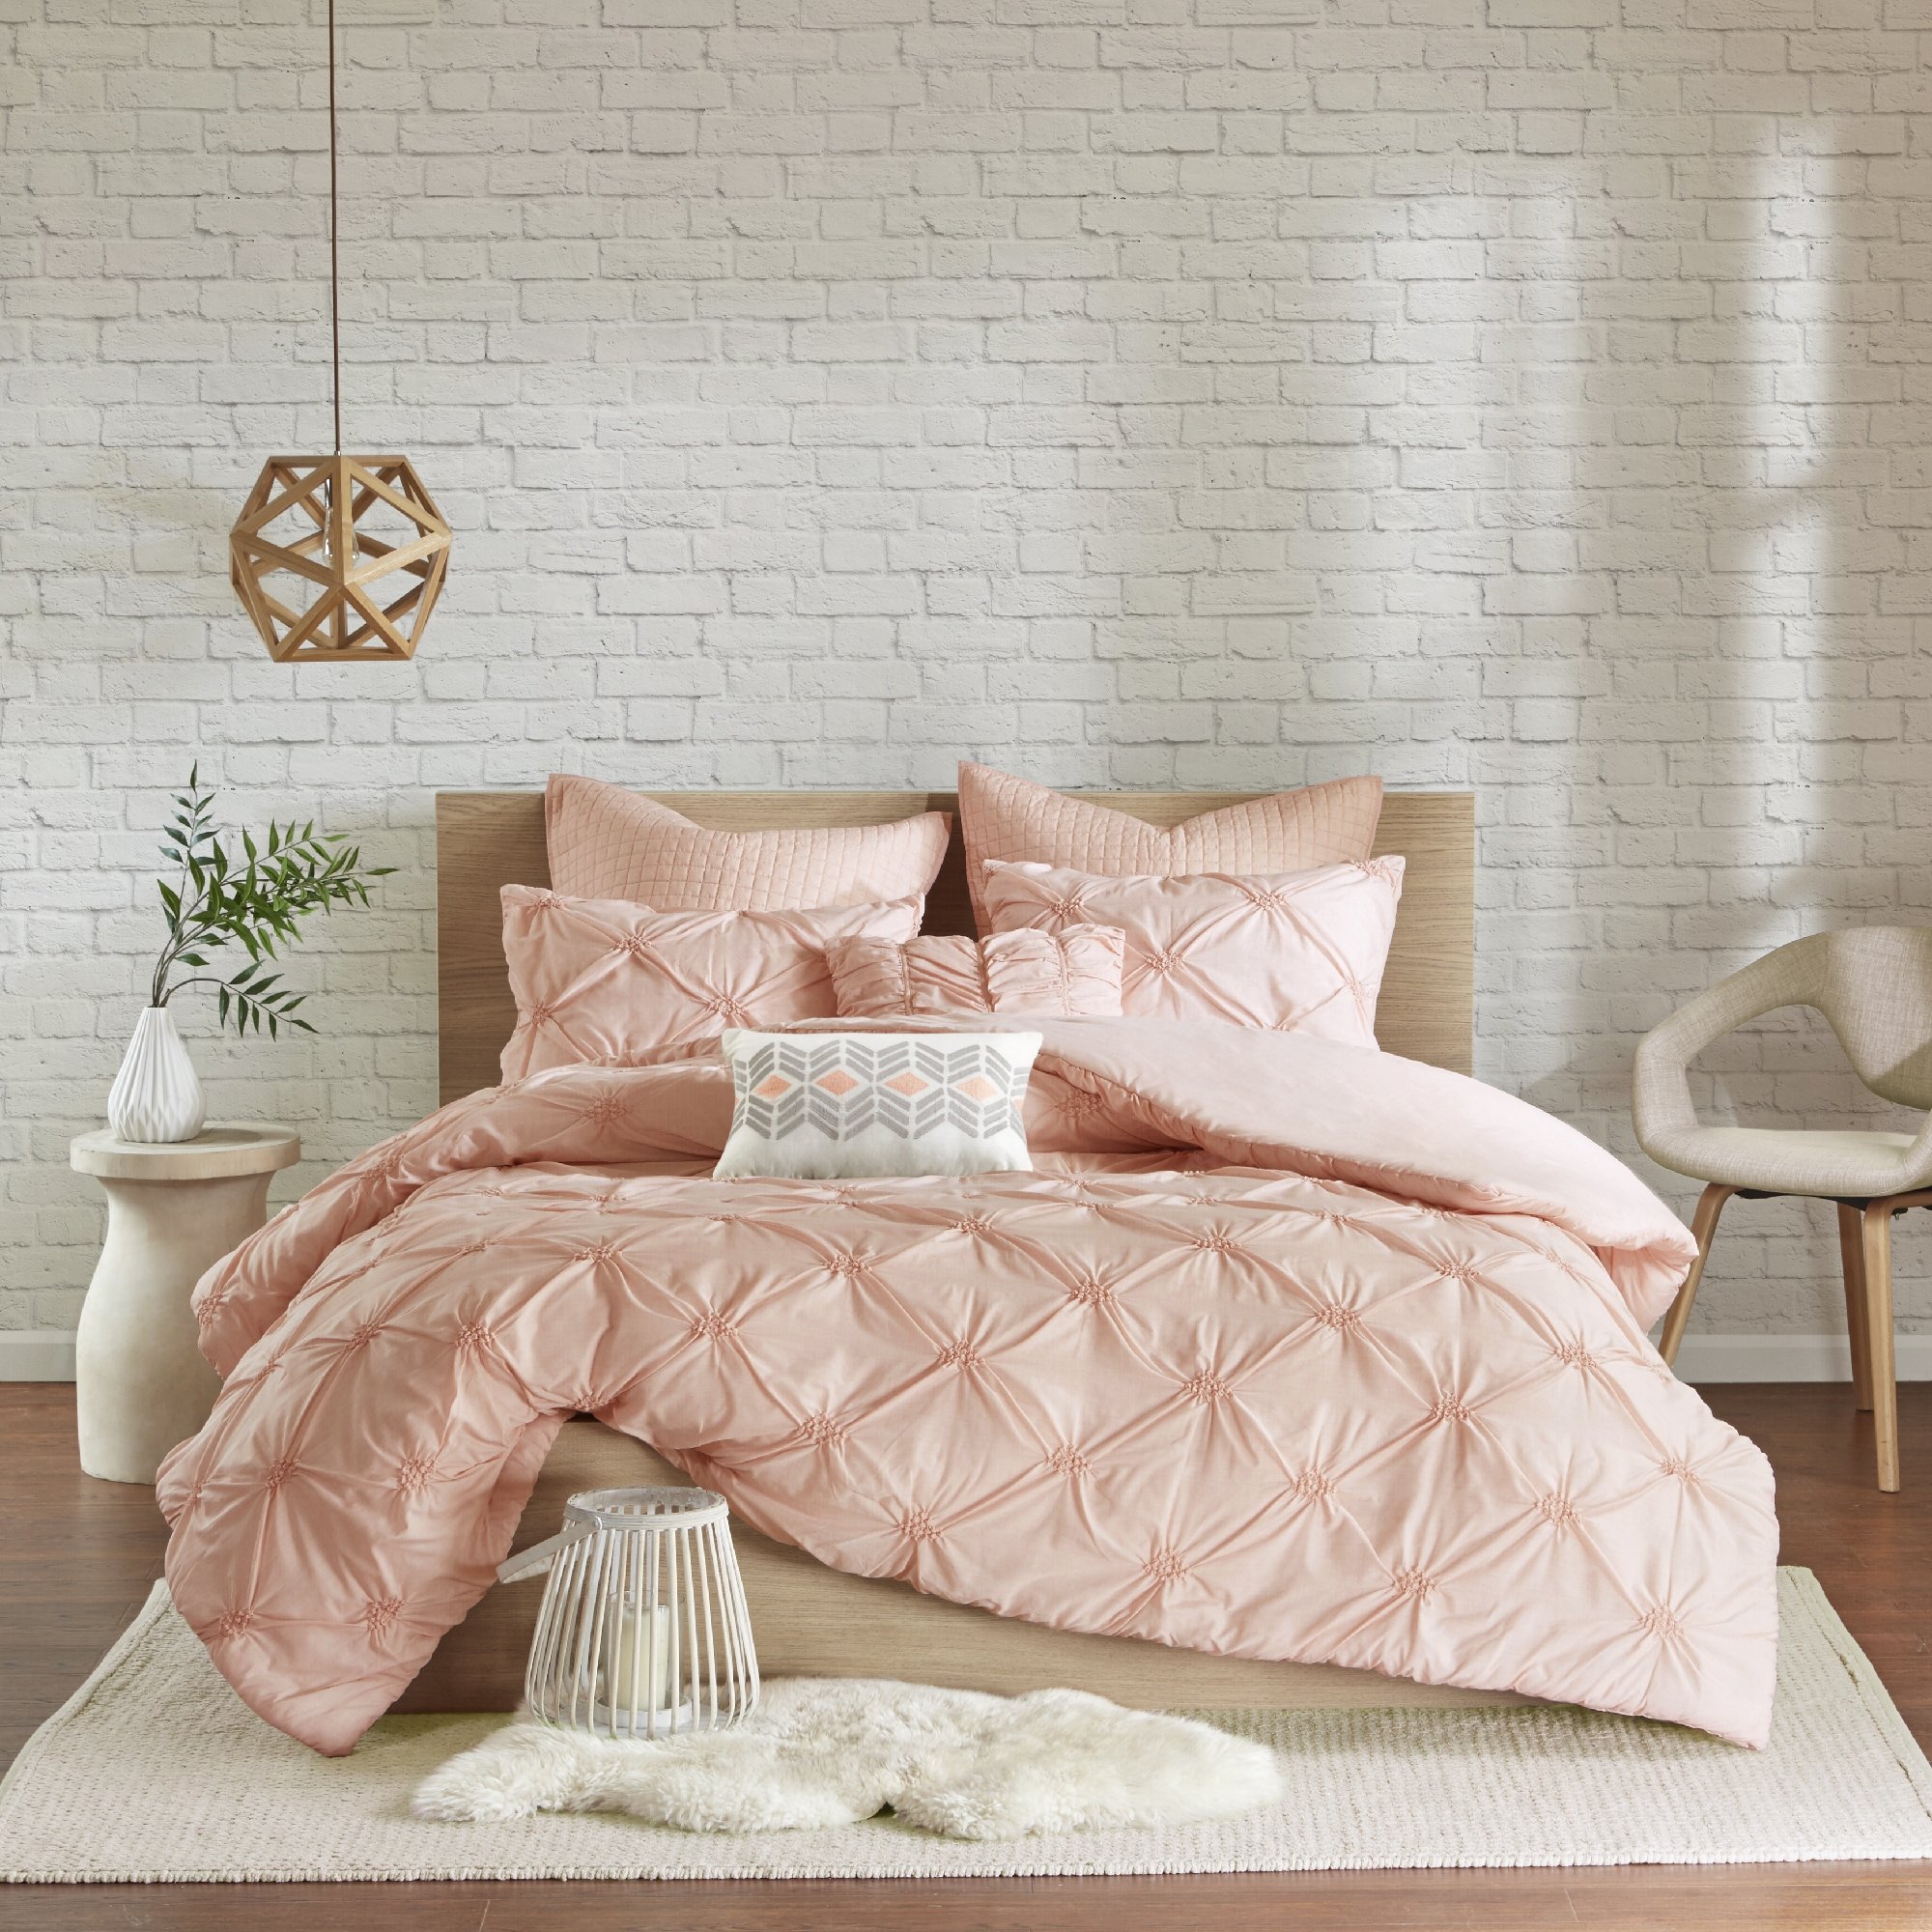 wendy comforter set pin king jackson pleat brooklyn cover in duvet pleated loom blush